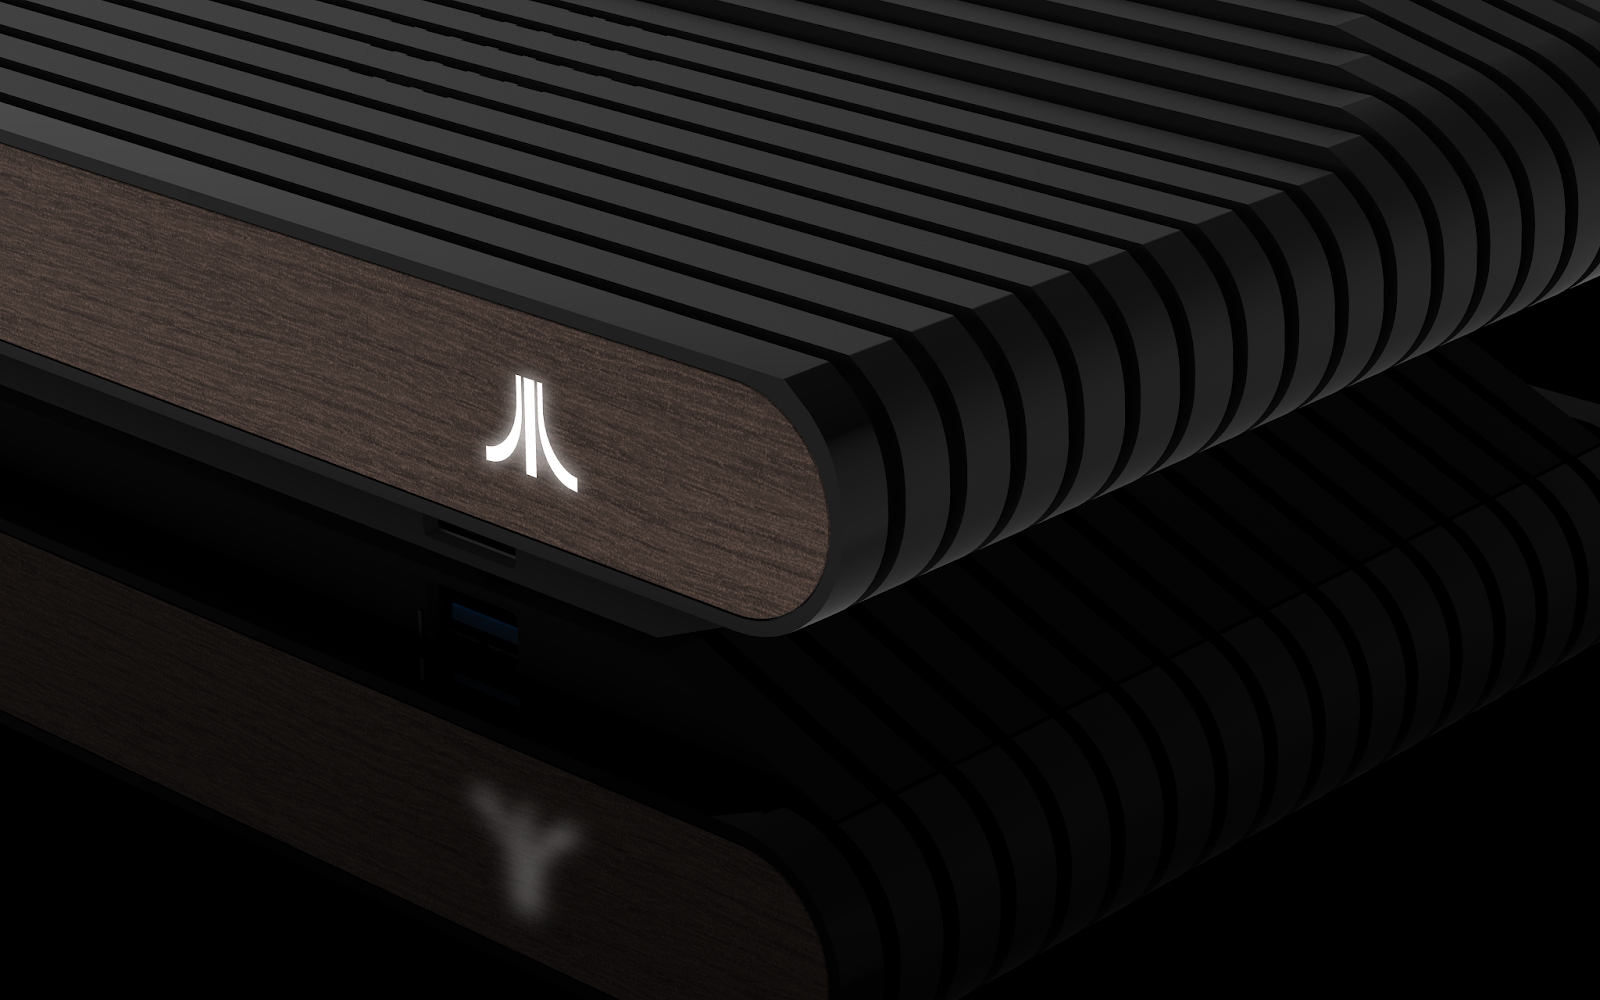 Atari VCS: preparation for commercial launch and compatibility with the Unity game engine